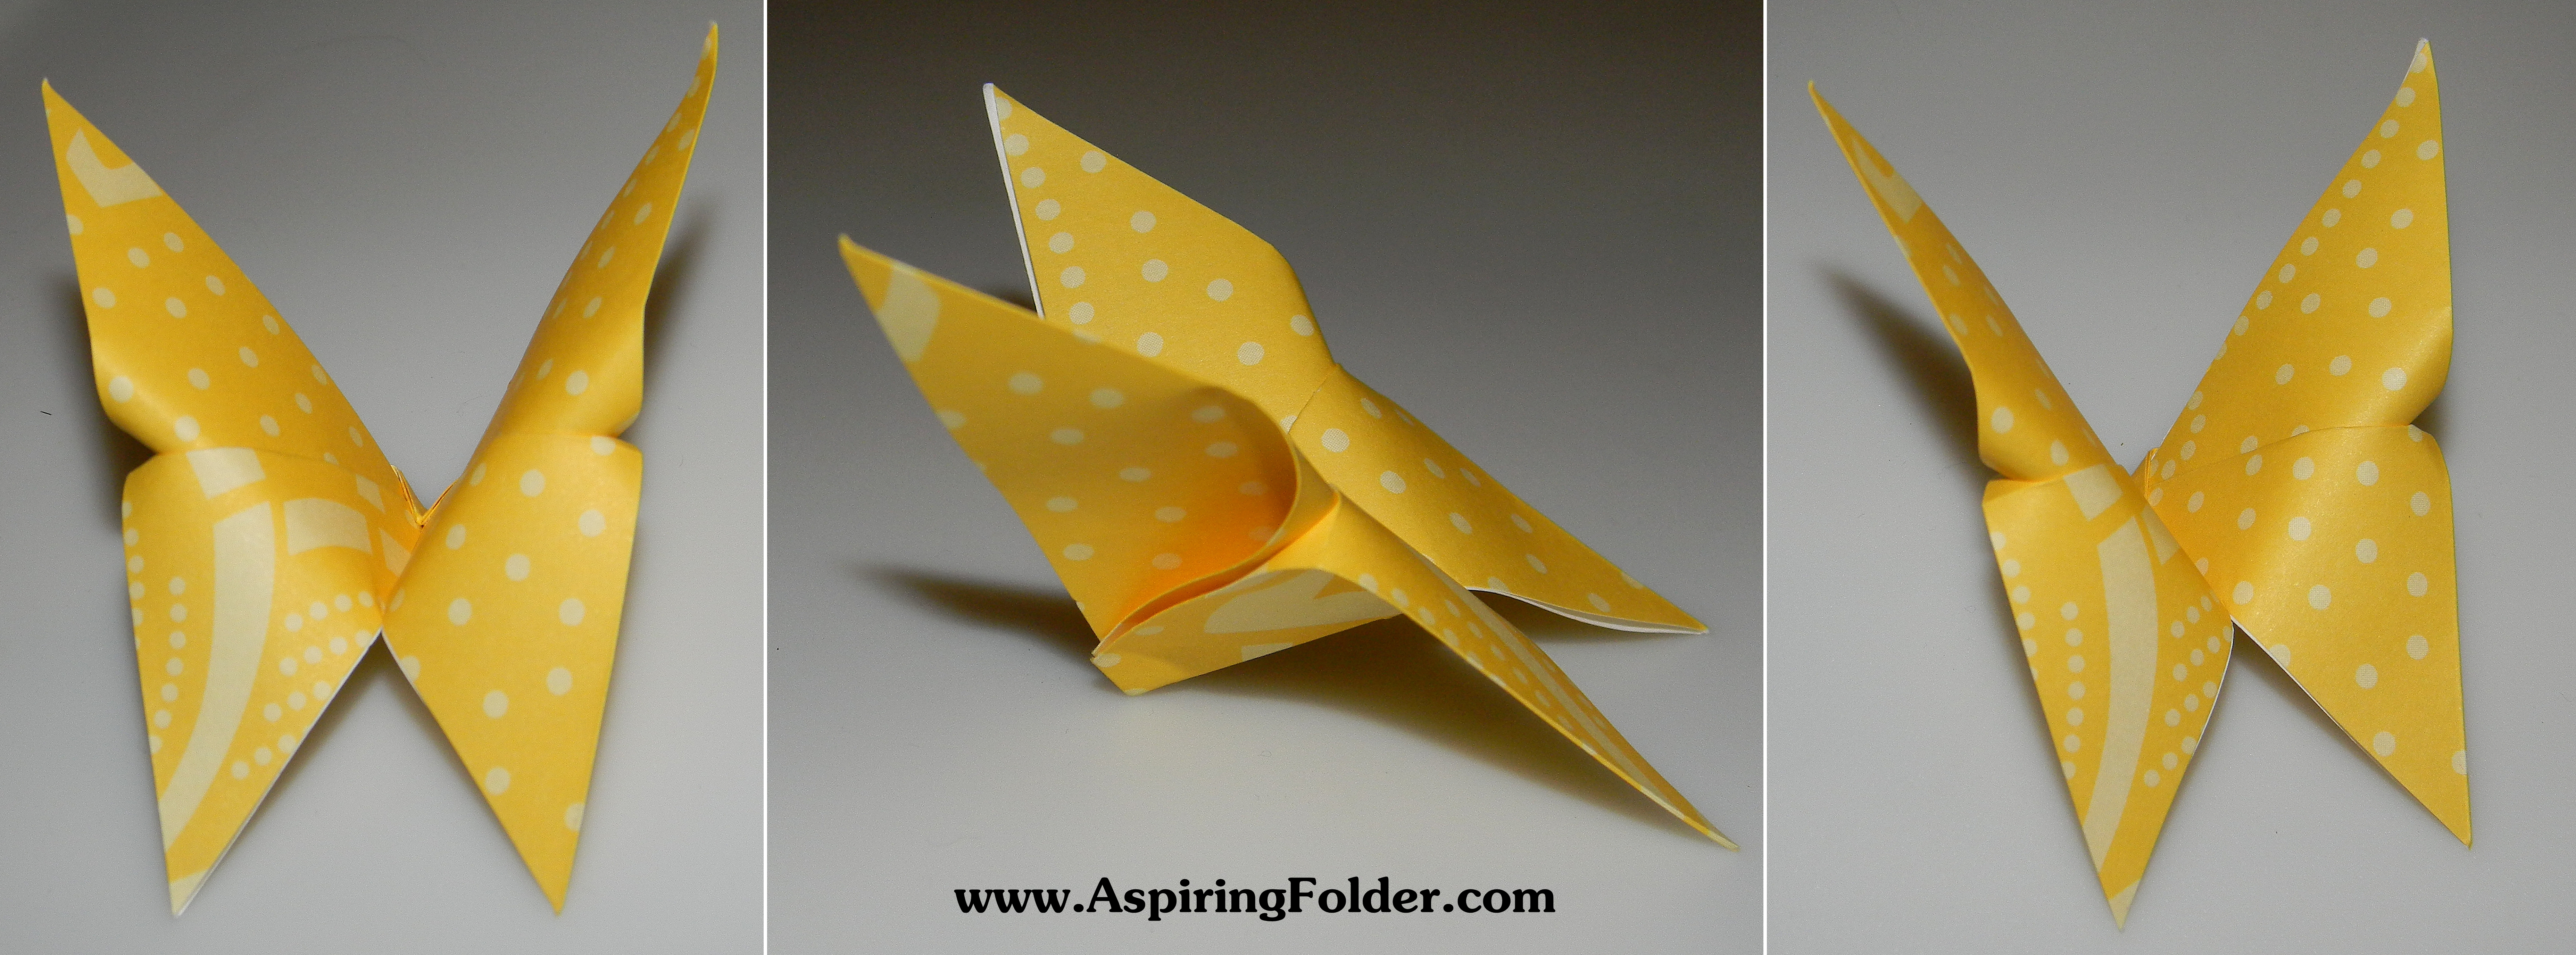 Origami Butterfly | Aspiring Folder - photo#39